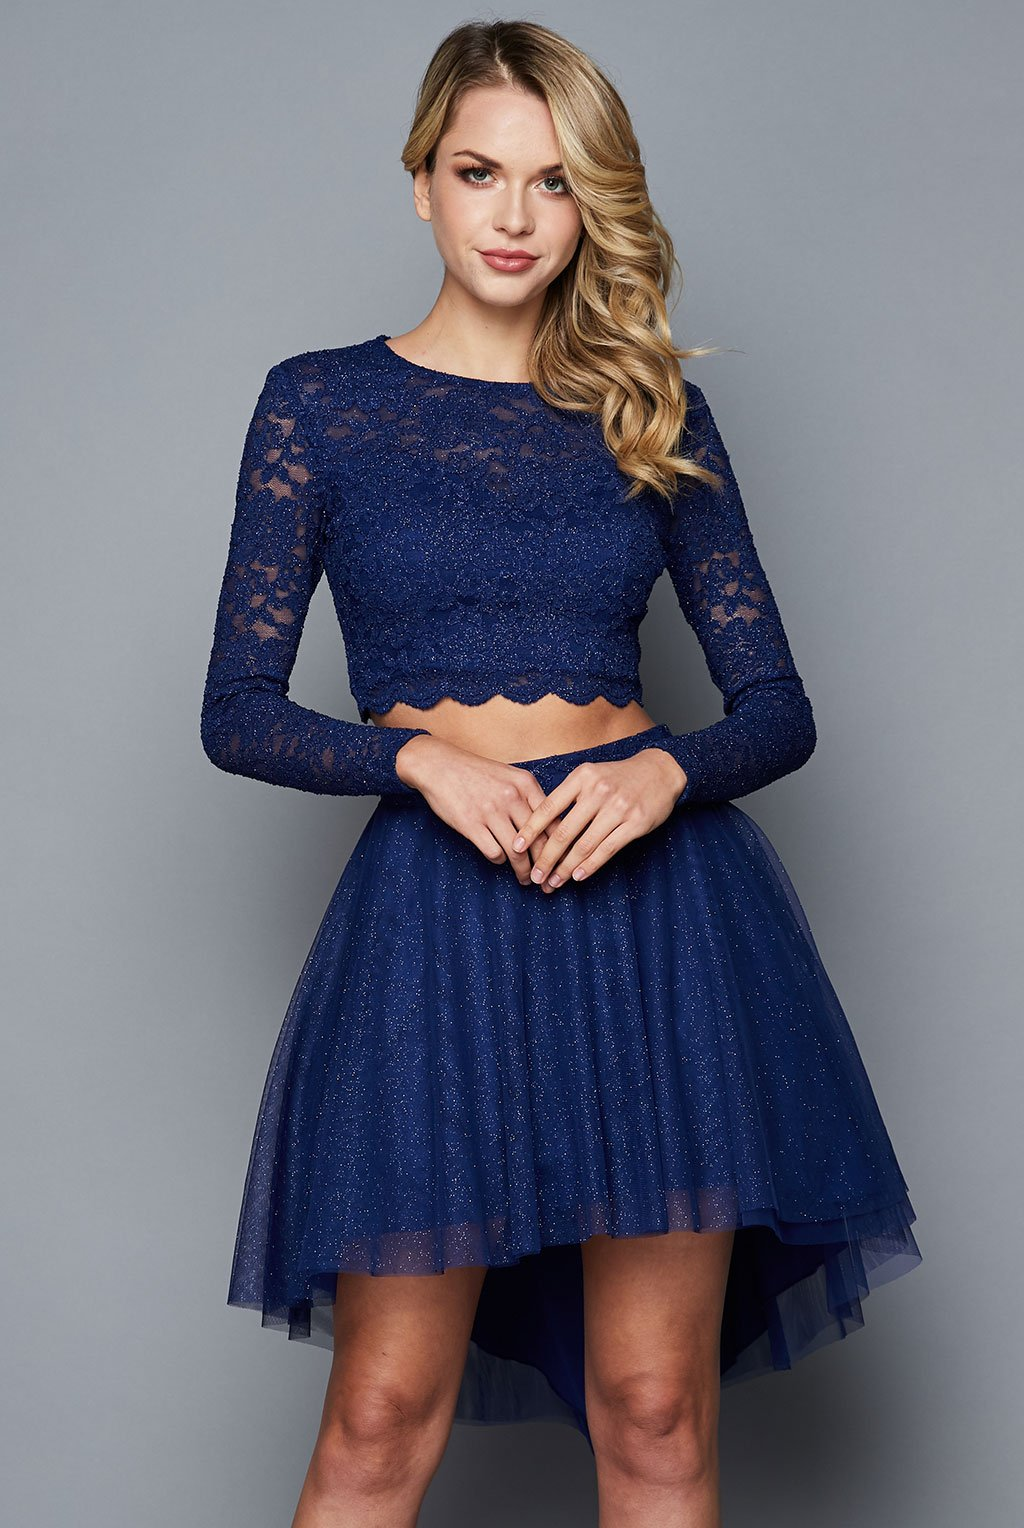 Teeze Me | Two Piece Long Sleeve Lace High Low Dress | Royal - Teeze Me